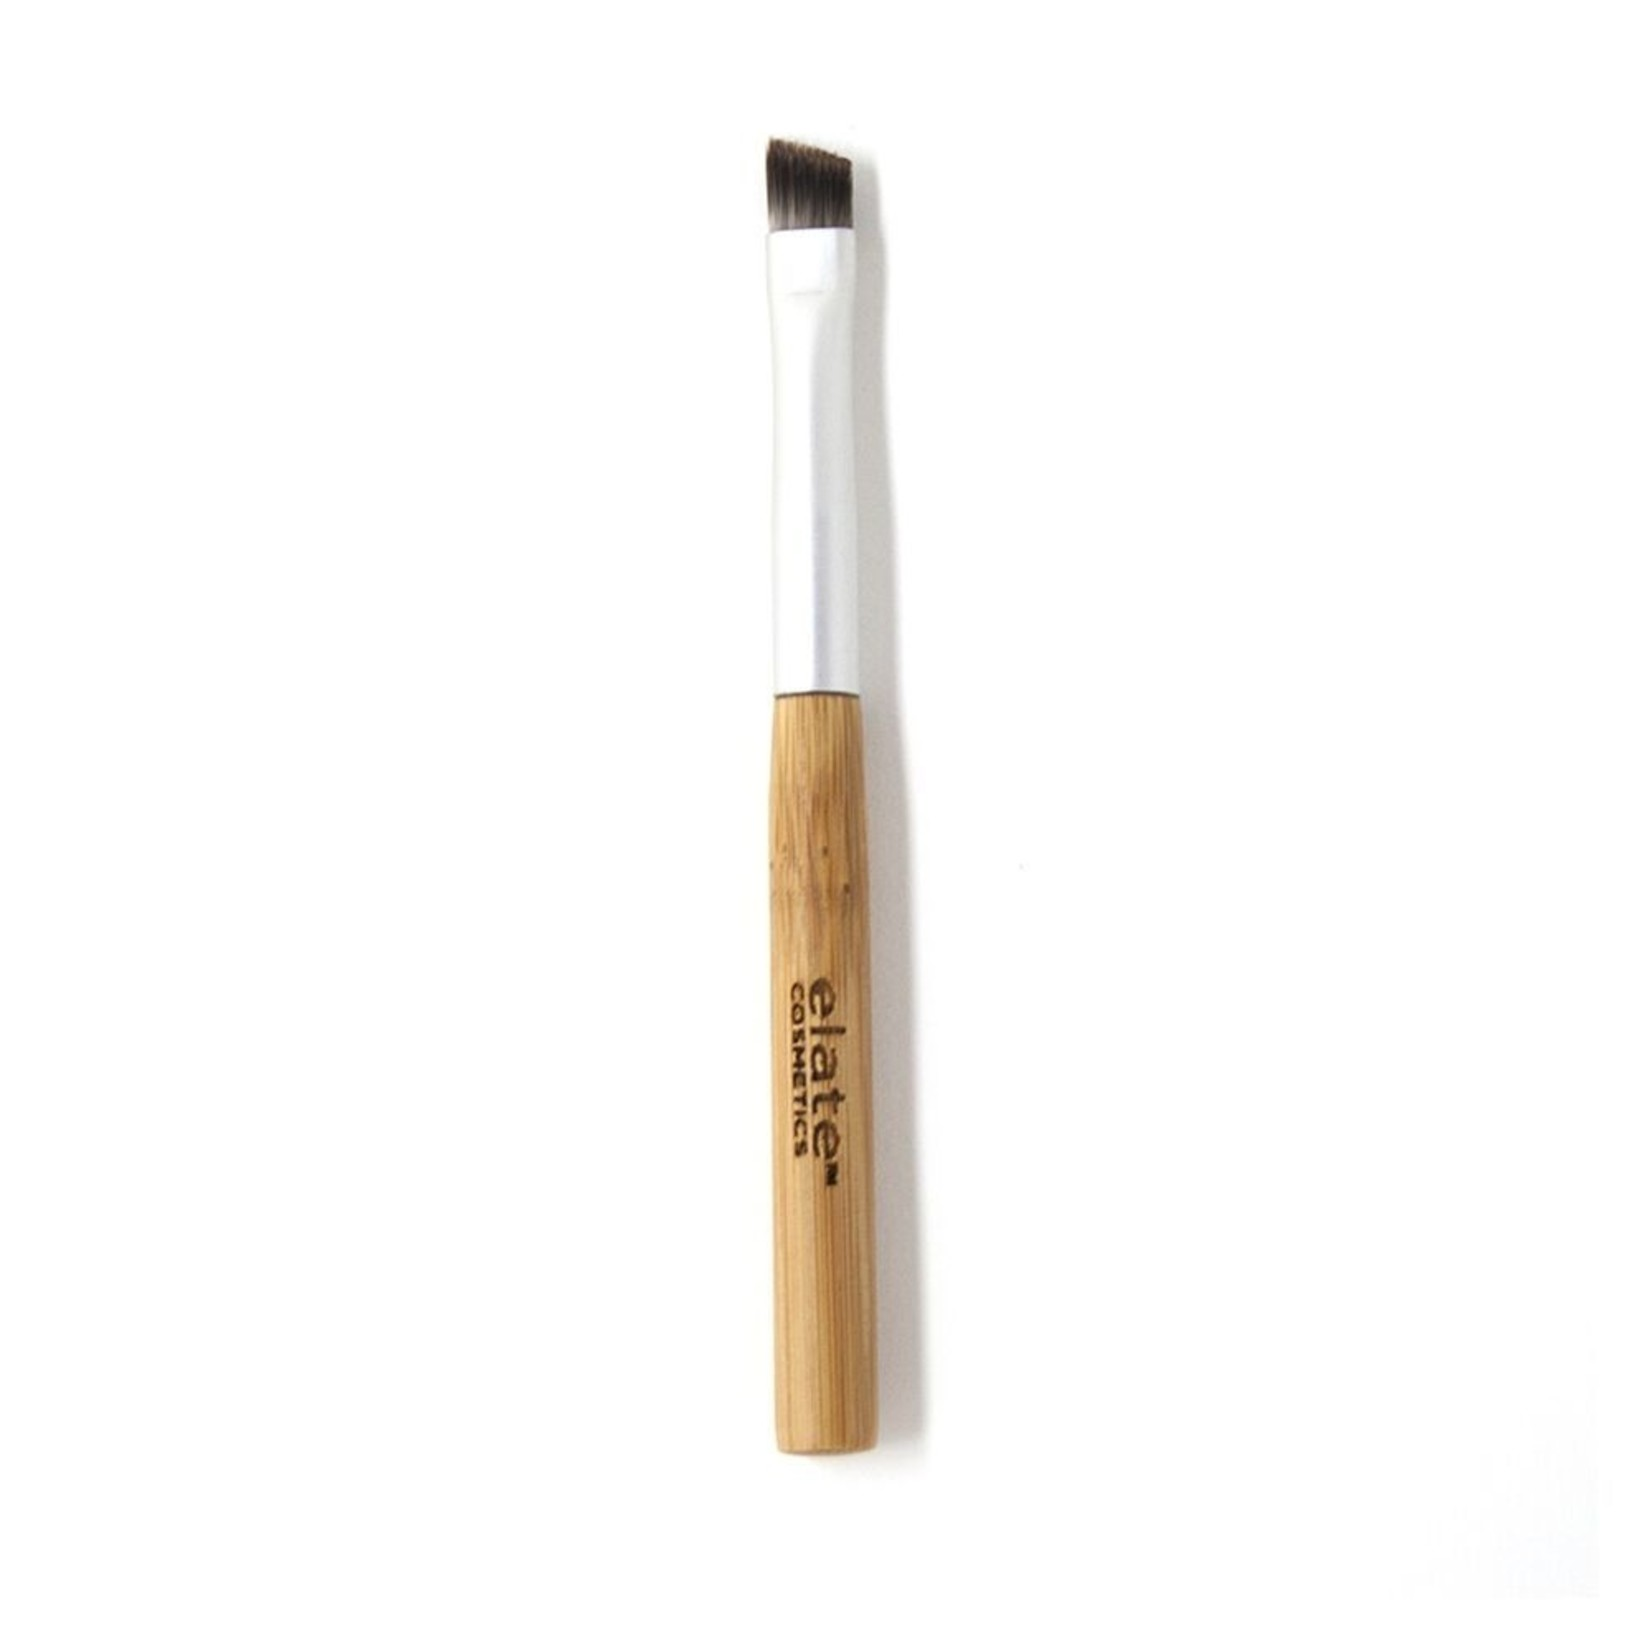 ELATE COSMETICS BAMBOO TRAVEL LINER/BROW BRUSH